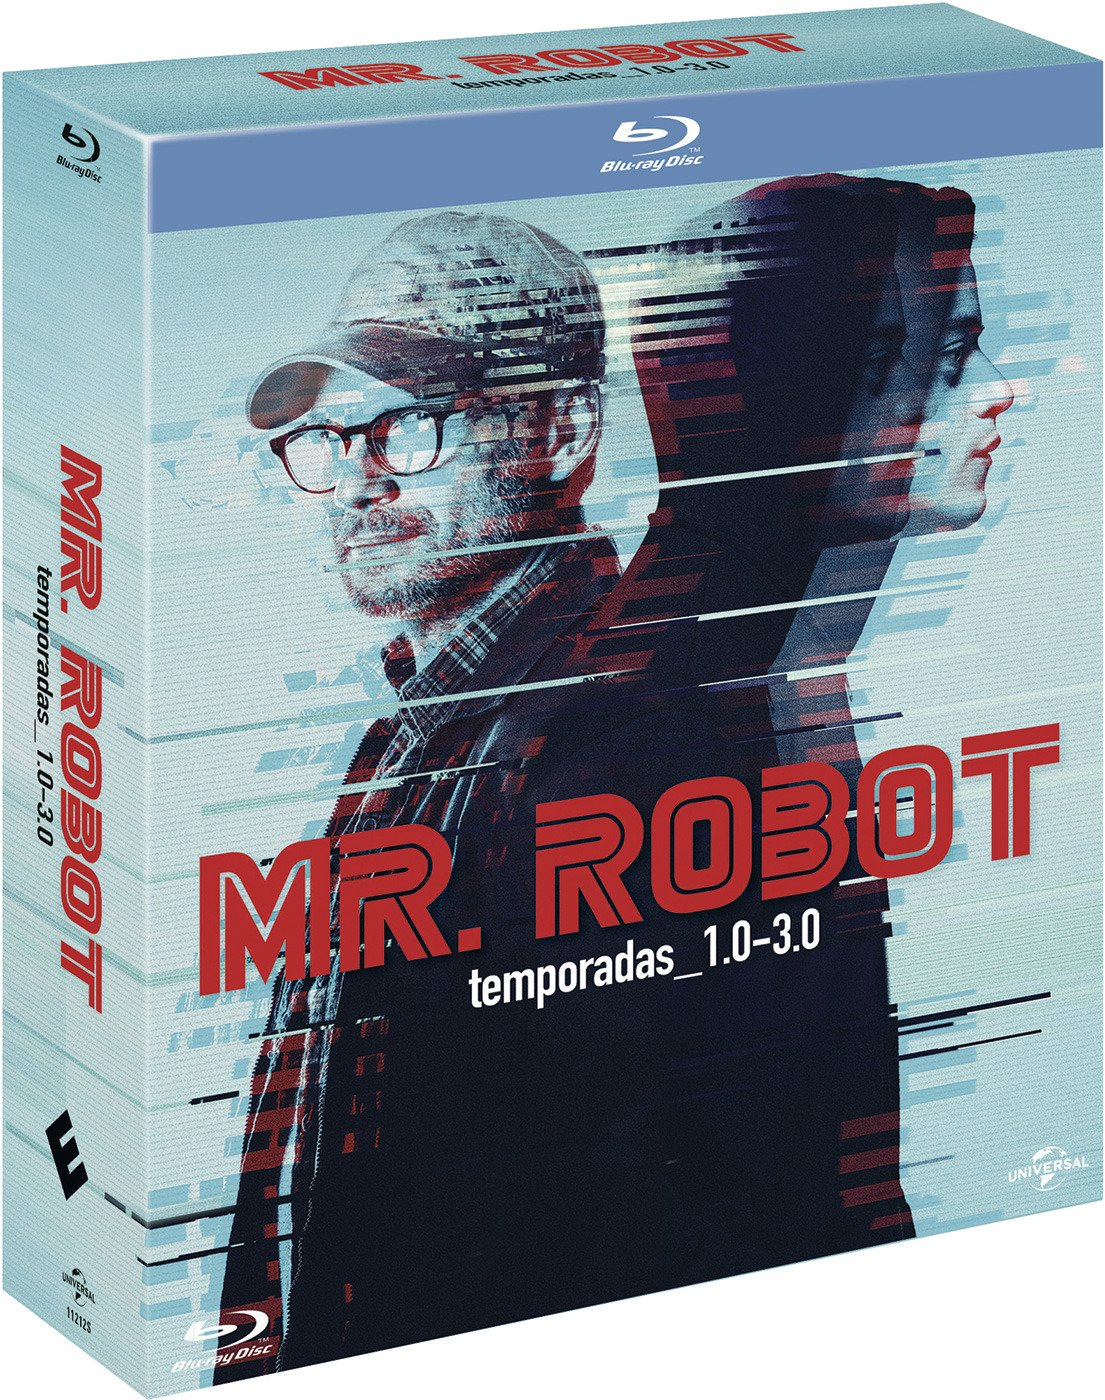 Pack: Mr. Robot - Temporadas 1-3 [Blu-ray]: Amazon.es: Rami Malek, Christian Slater, Portia Doubleday, Sam Esmail, Rami Malek, Christian Slater, Anonymous Content: Cine y Series TV